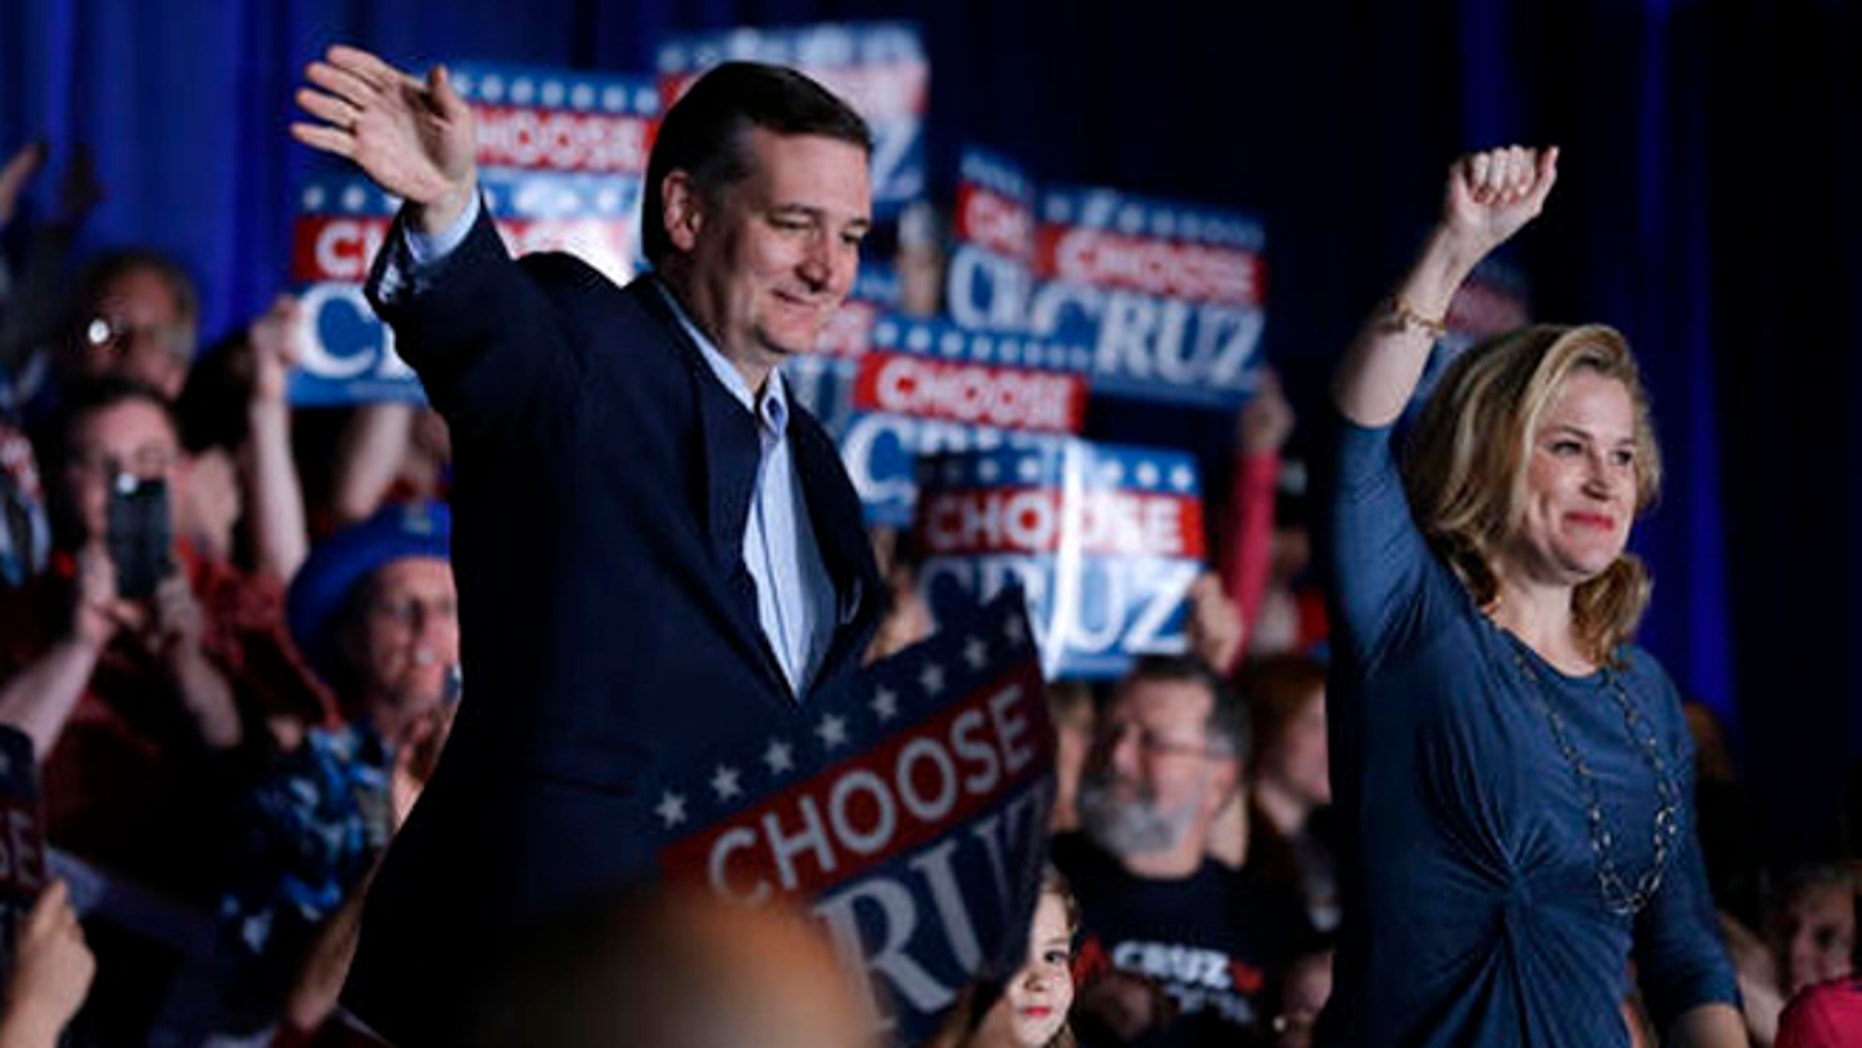 Republican presidential candidate Sen. Ted Cruz, R-Texas, waves with his wife Heidi at a rally at the Indiana State Fairgrounds in Indianapolis, Monday, May 2, 2016. (AP Photo/Michael Conroy)